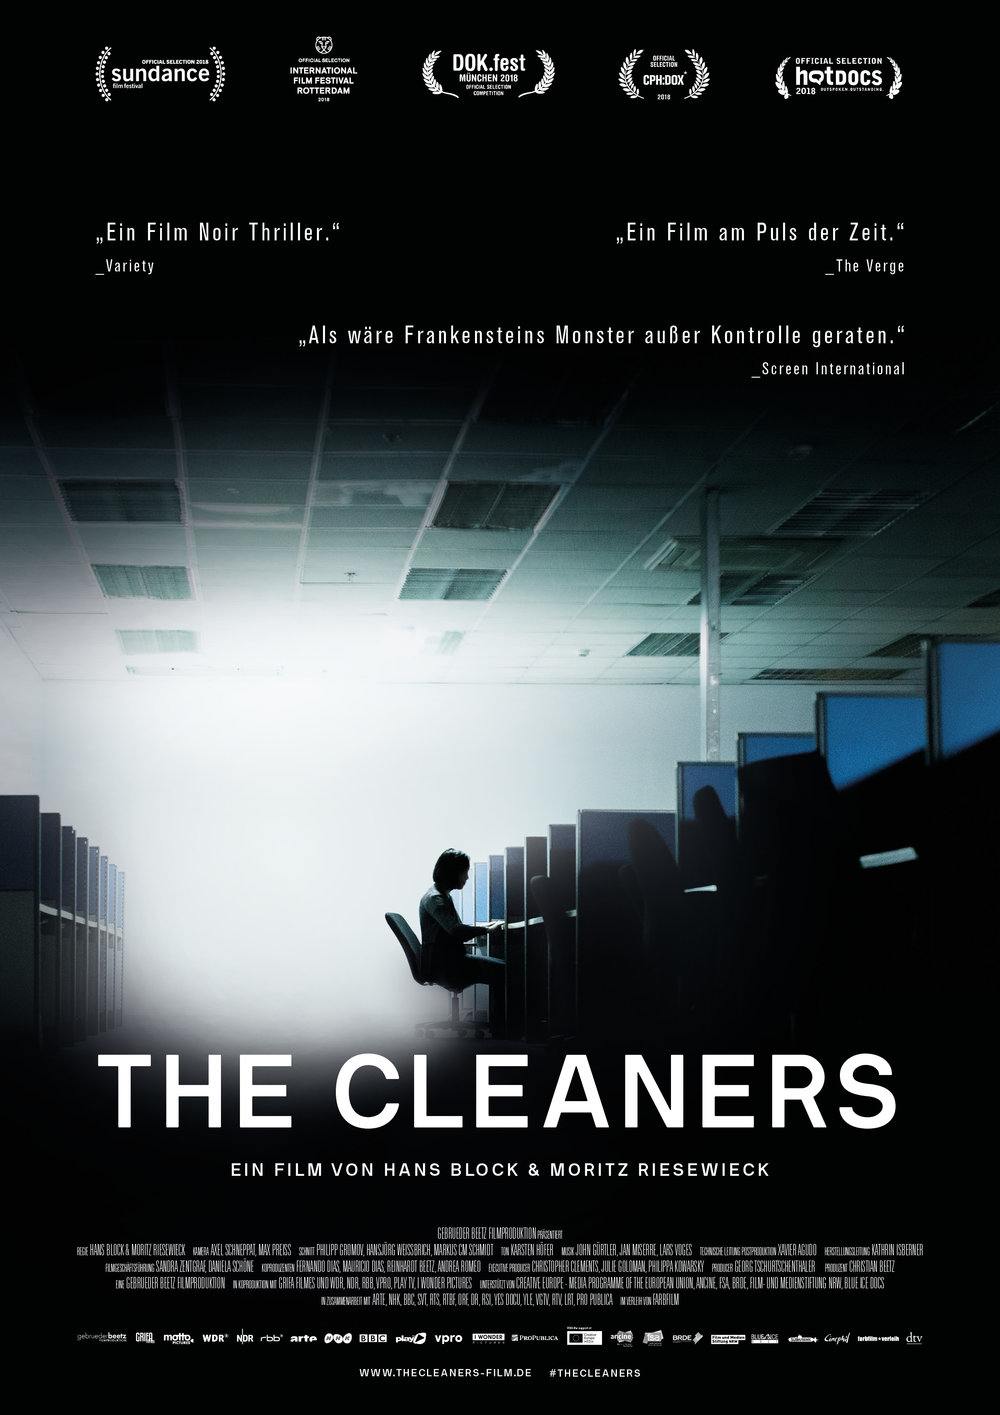 CLEANERS_THE_Plakat.jpg